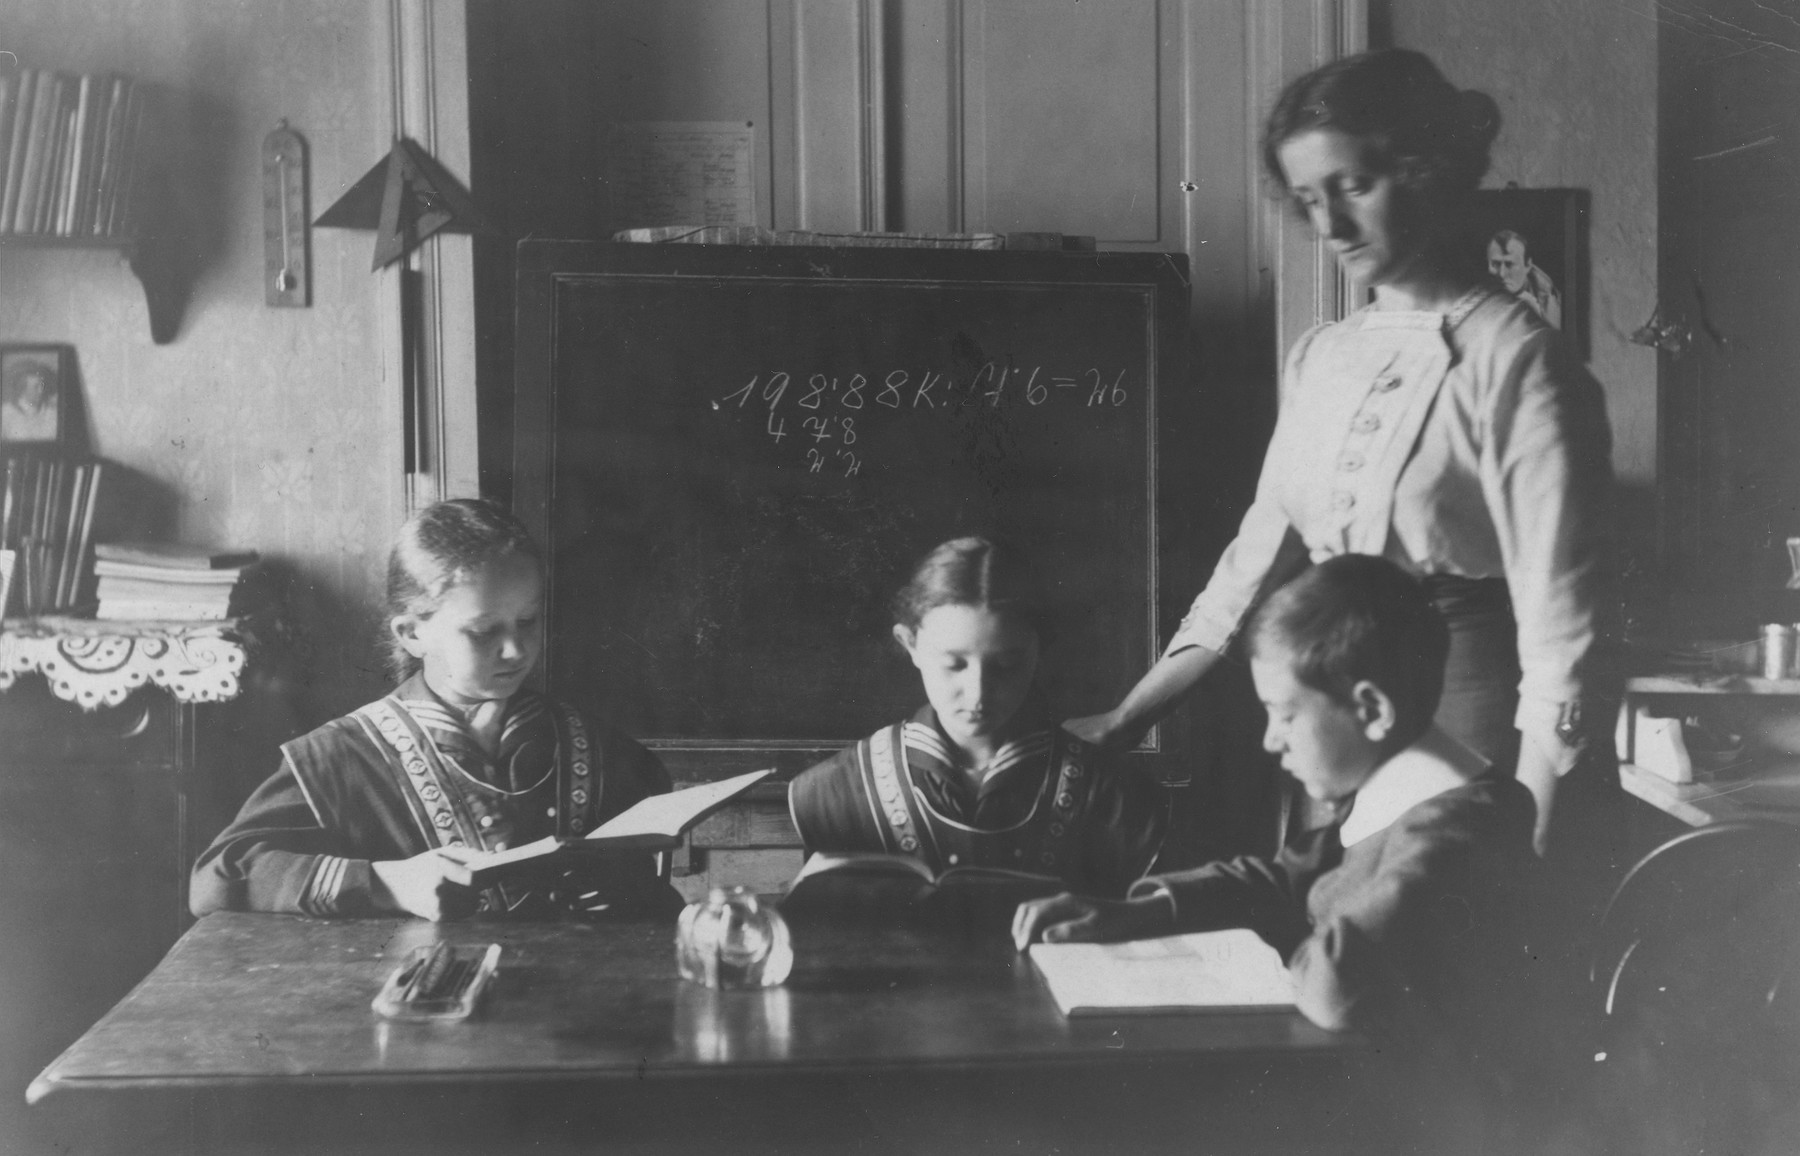 A teacher assists three children with their lessons.  Seated on the far left is Irenka Huber.  Irenka, the sister of Eliska (Huberova) Deutschova, survived WWII in hiding in Hungary.